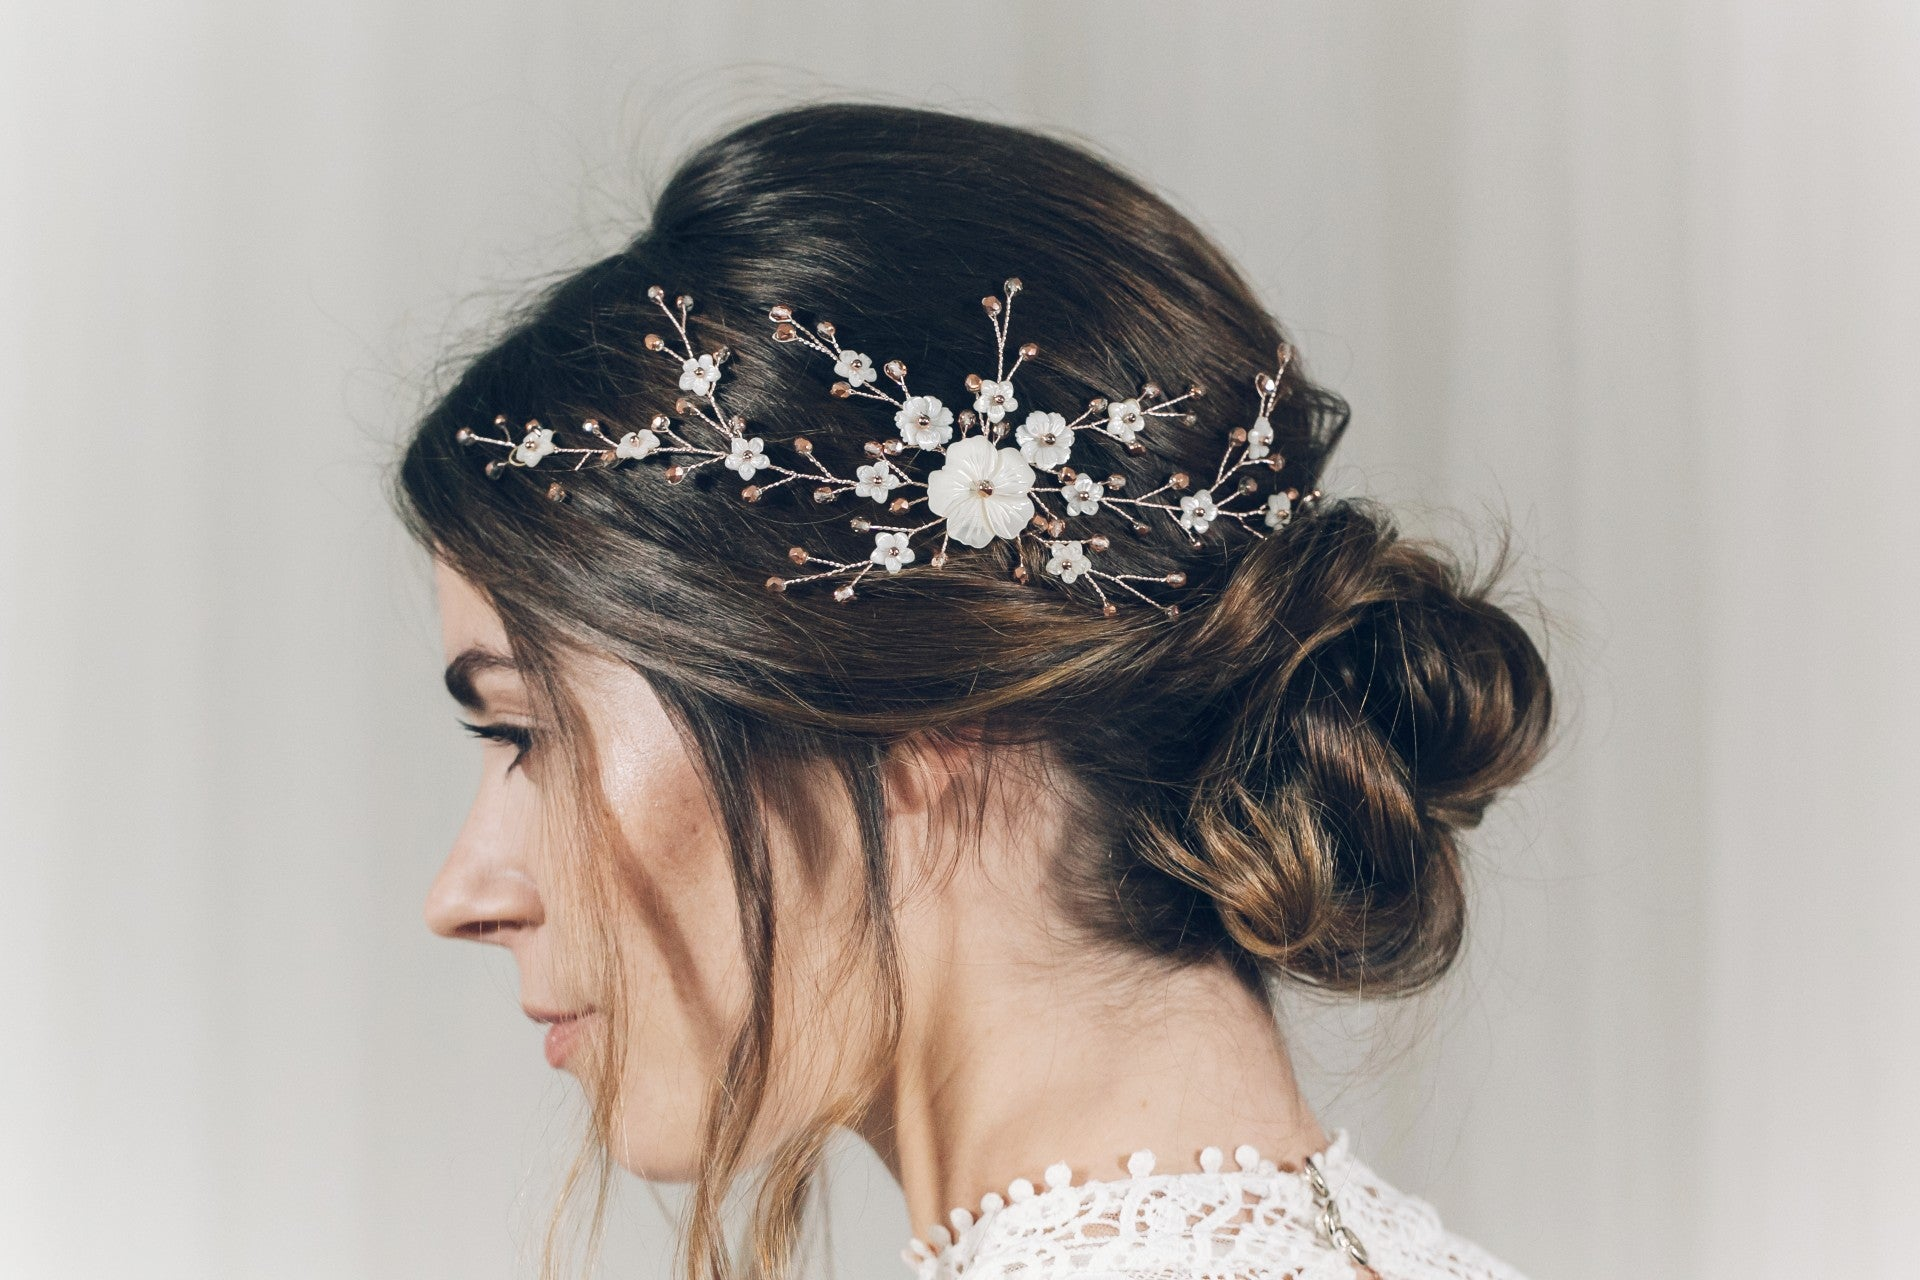 Rose Gold Hair Accessories for Weddings Small Sylvie flower hair comb